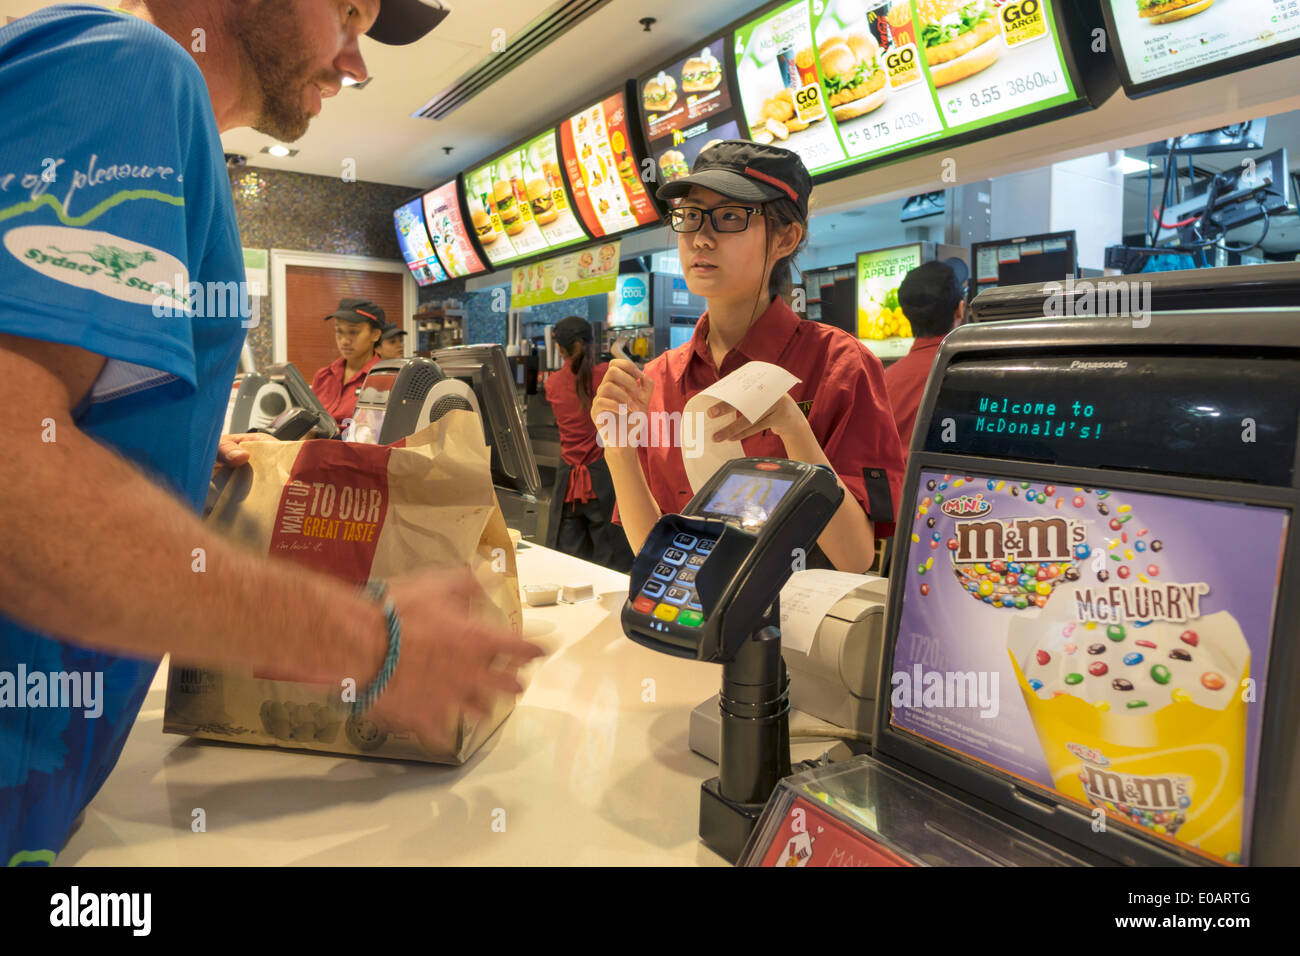 Sydney Australia NSW New South Wales CBD Central Business District Circular Quay McDonald's restaurant fast food counter ordering Asian woman teen gir - Stock Image